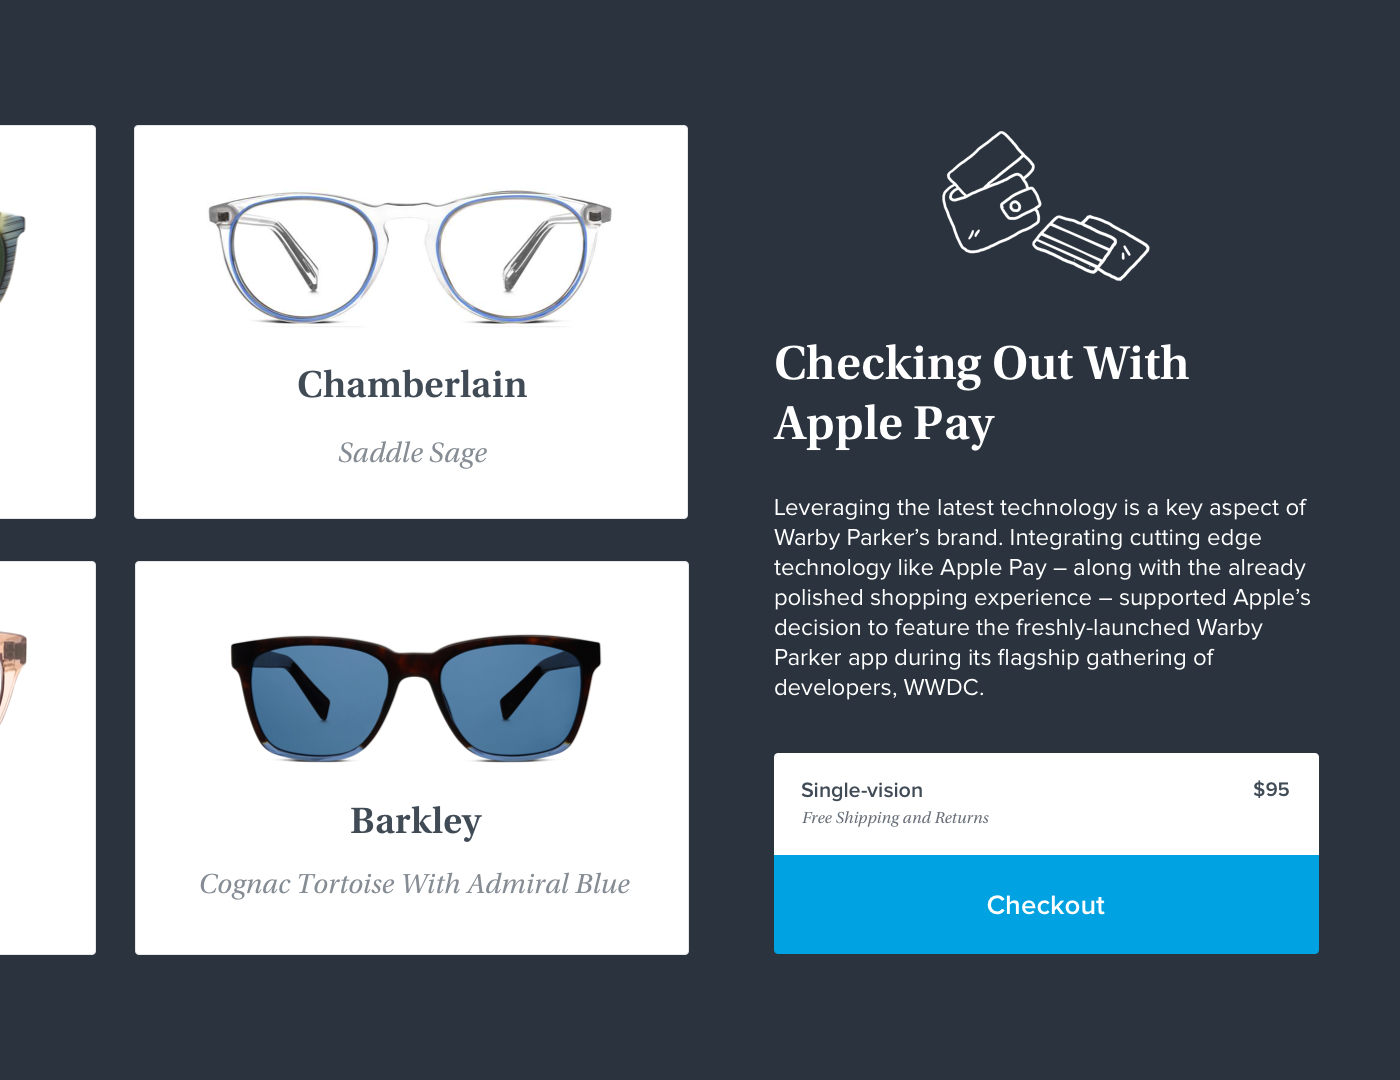 9416905957d6 We helped build an award-winning app that was featured in the App Store  immediately upon launch. The team at Warby Parker is now well-poised to  continue a ...